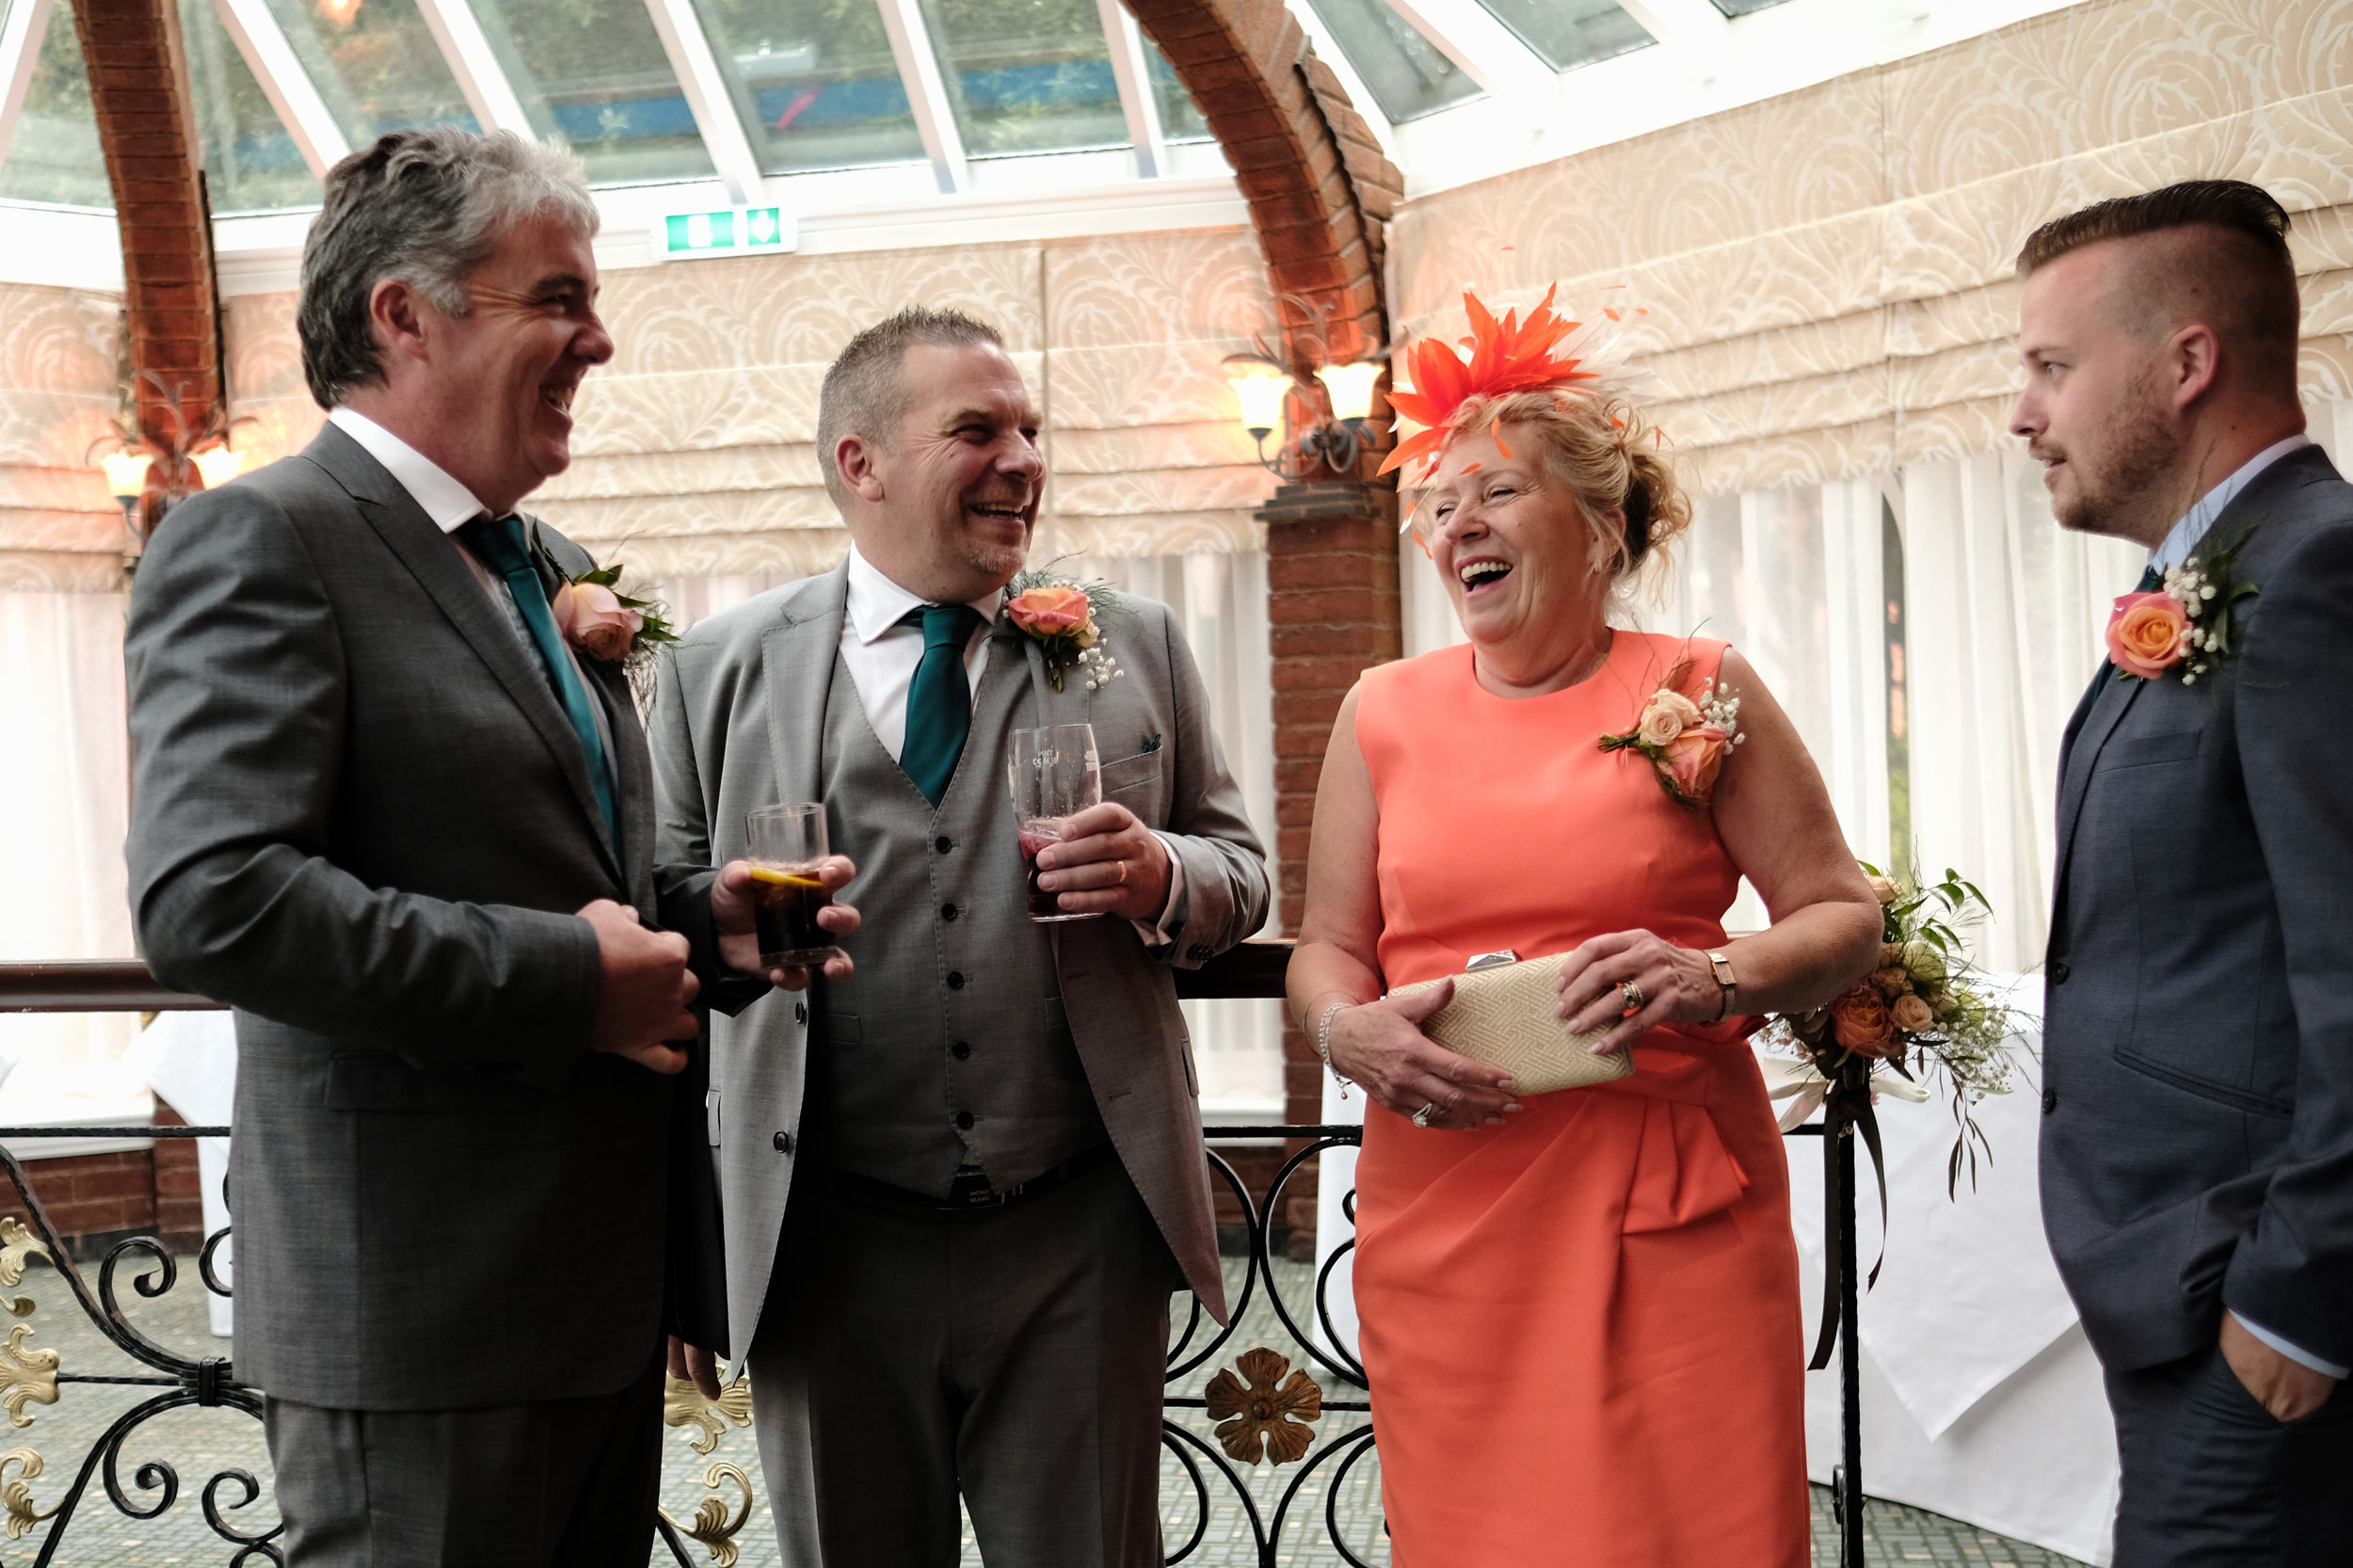 Warwickshire Wedding Photographer Ardencote Manor House 20 - waiting for guests at reception.jpg